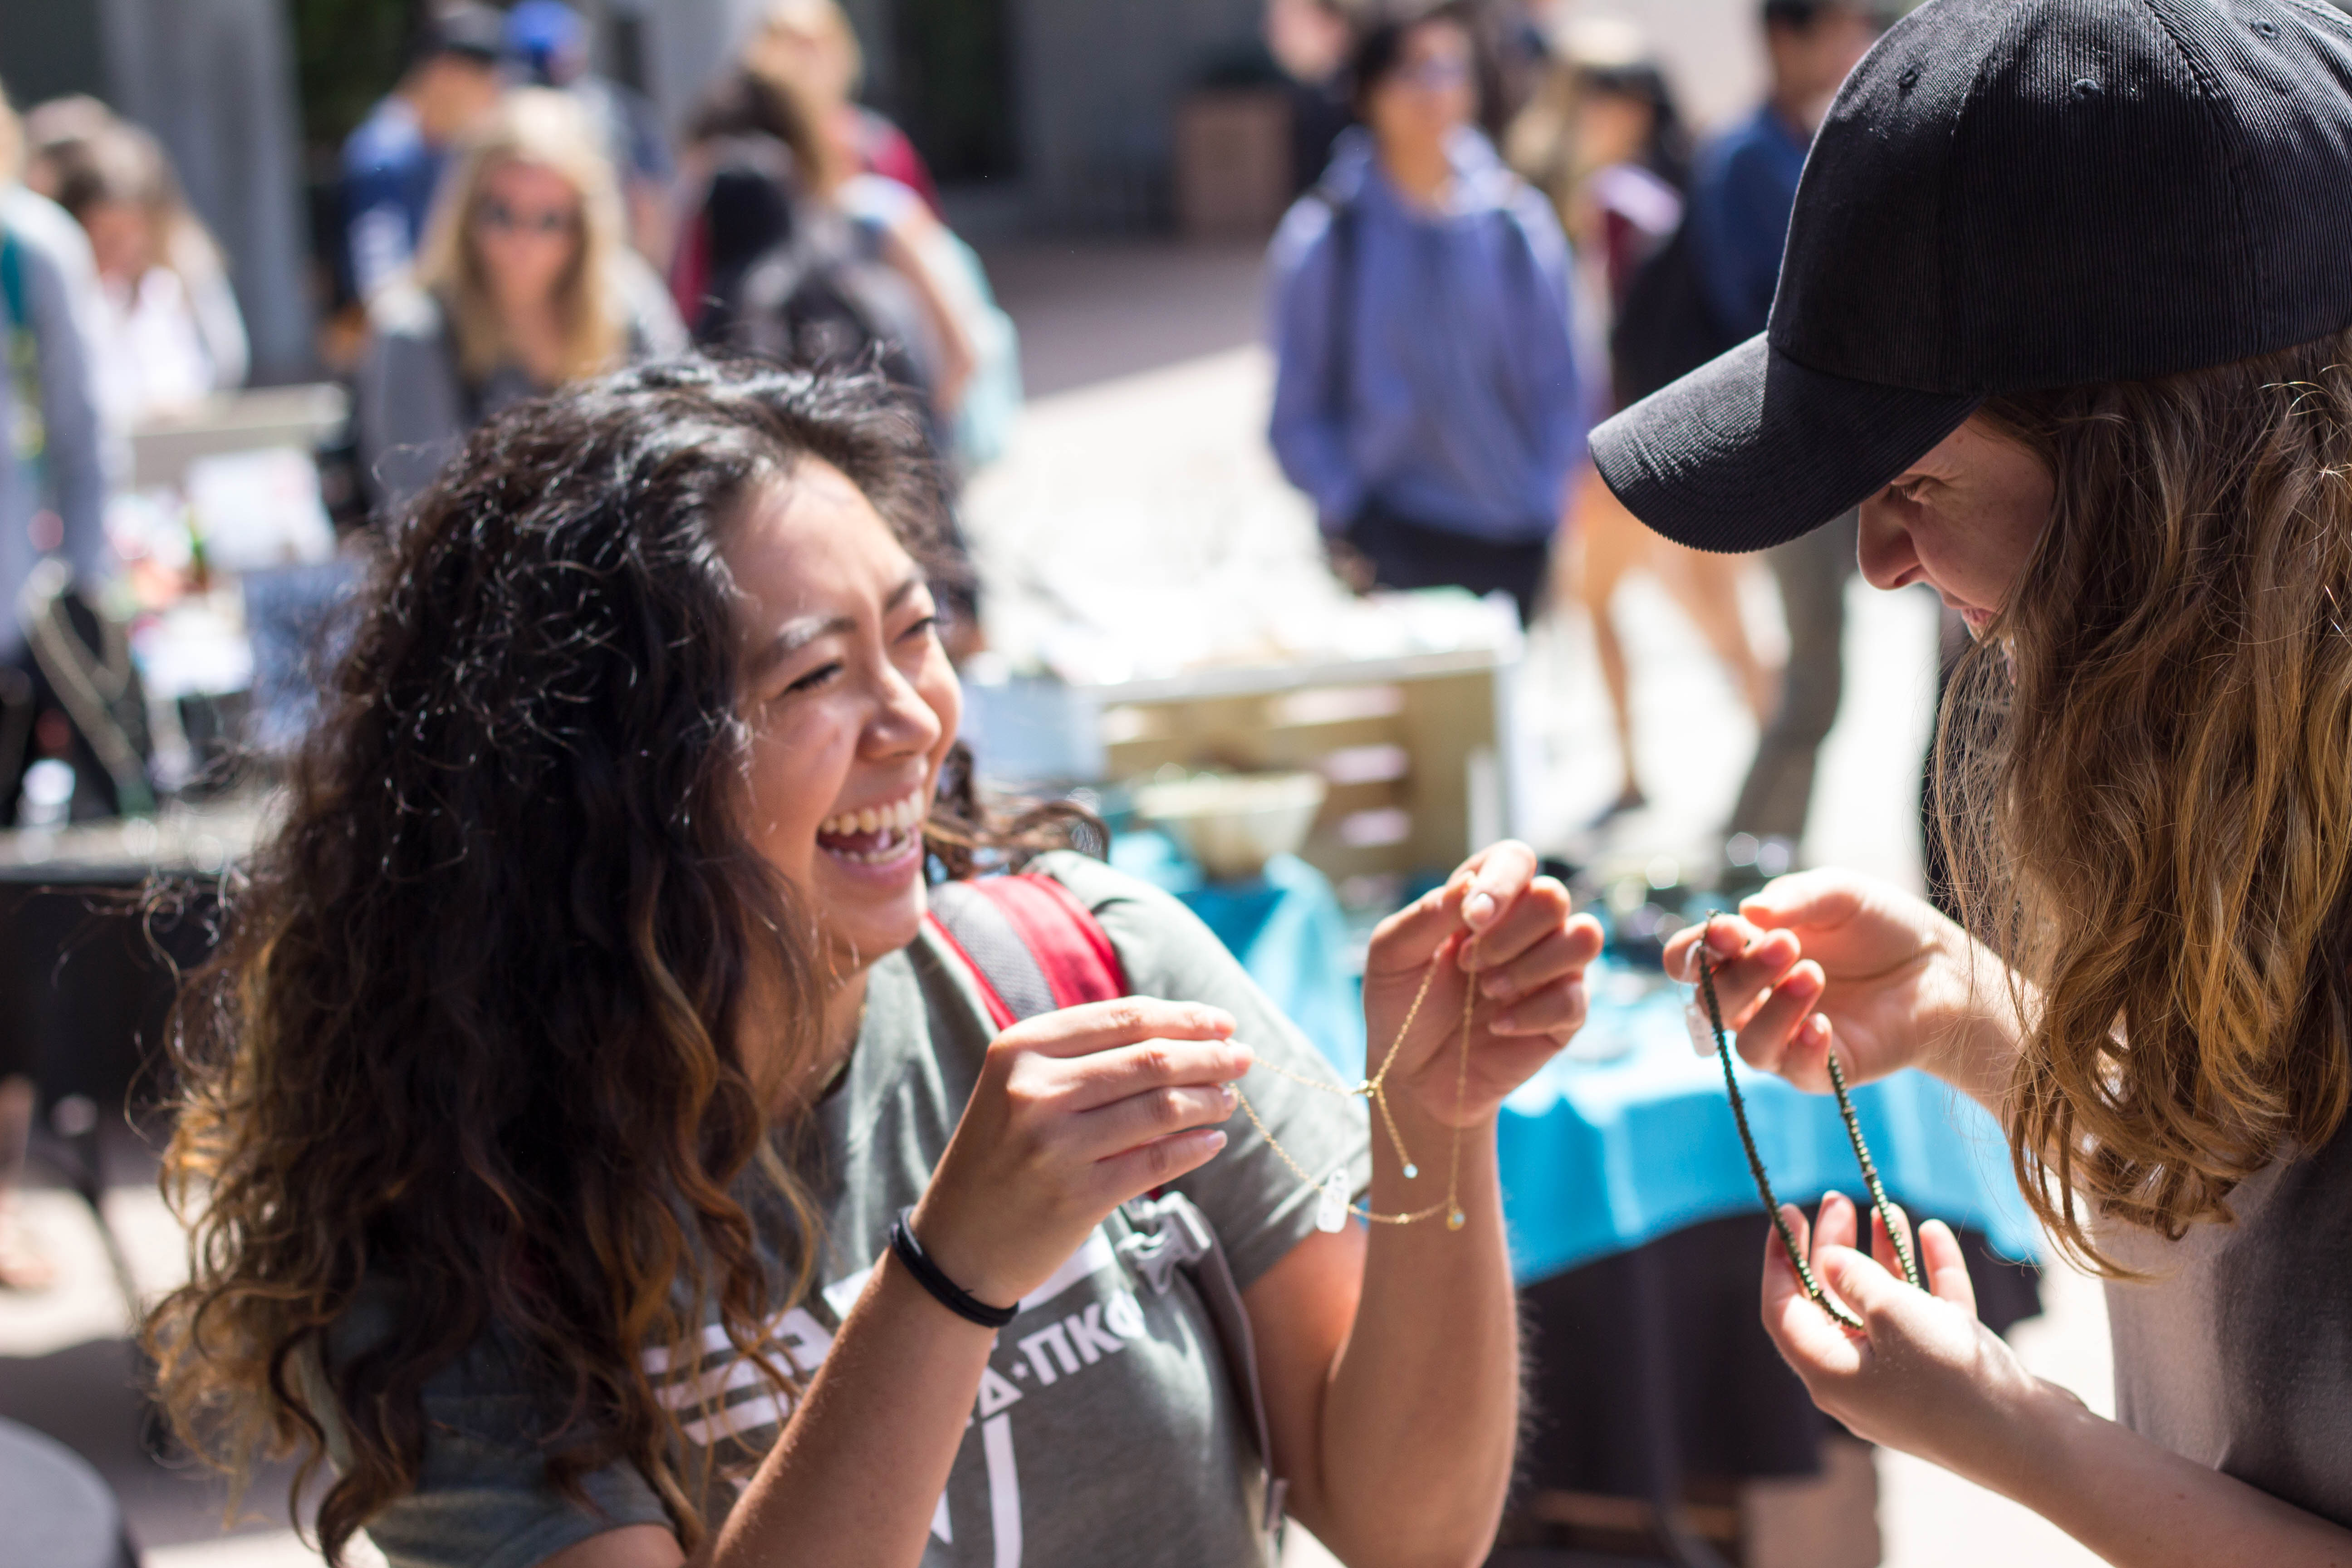 Two female students smile while holding up necklaces at the Craft Sale